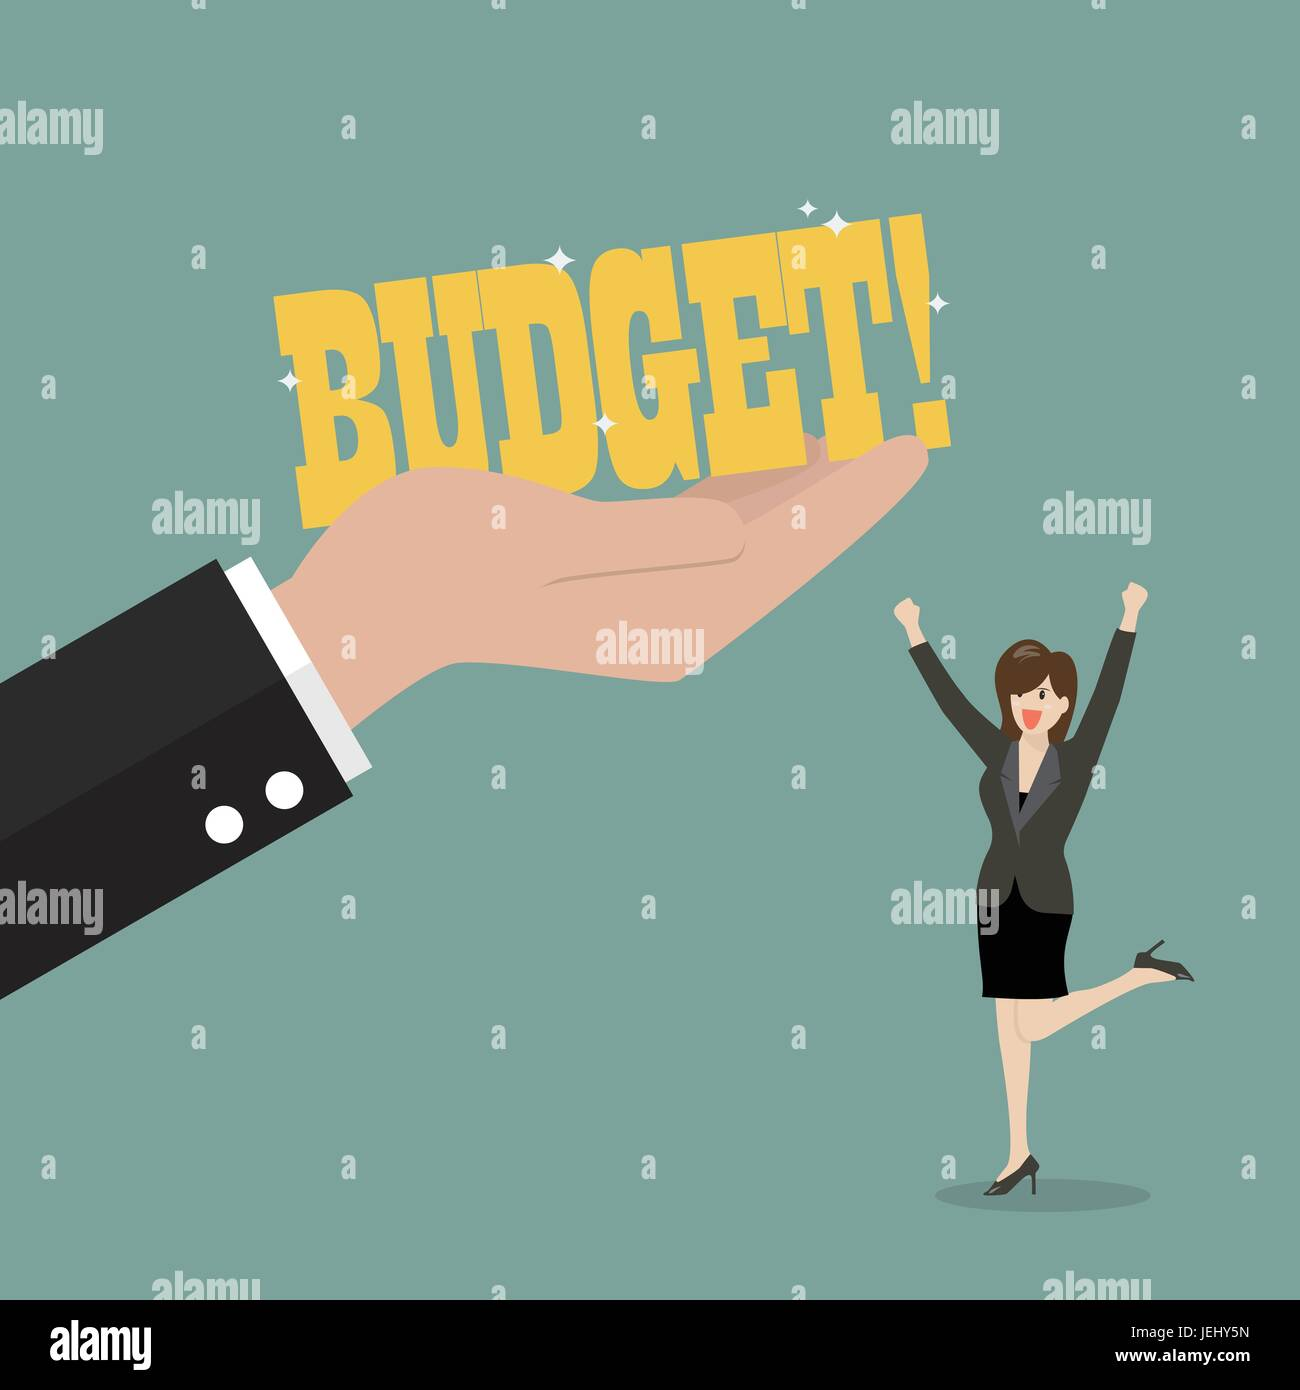 Big hand give a budget to business woman. Business concept - Stock Image